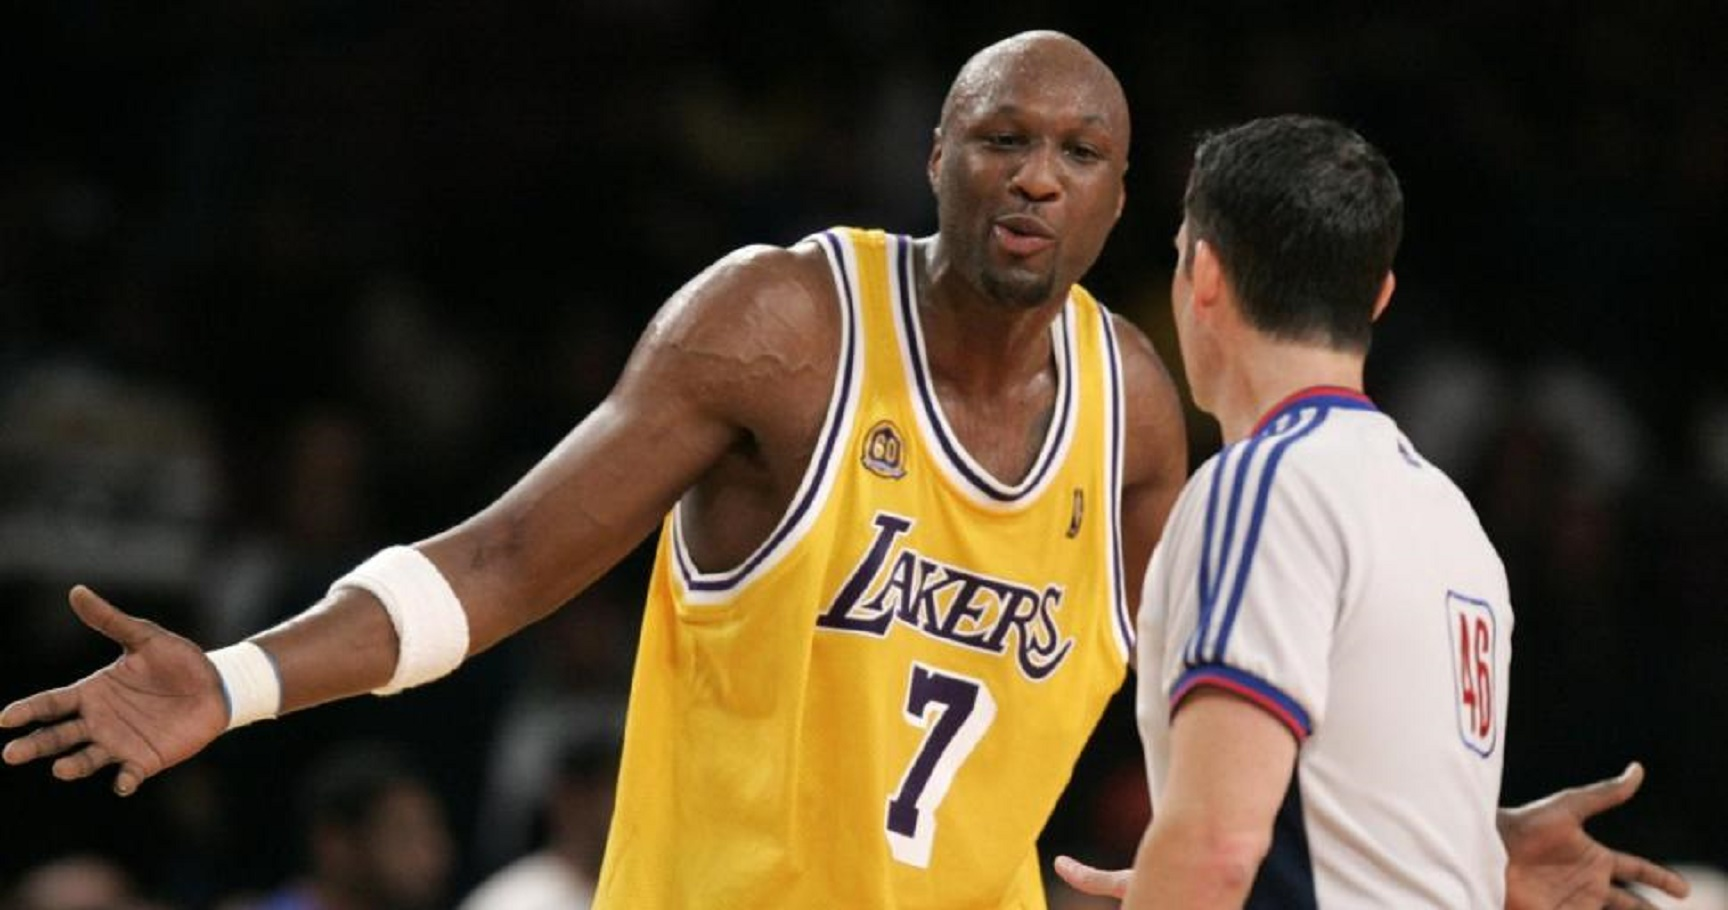 Top 10 NBA Players Who Were Never All Stars